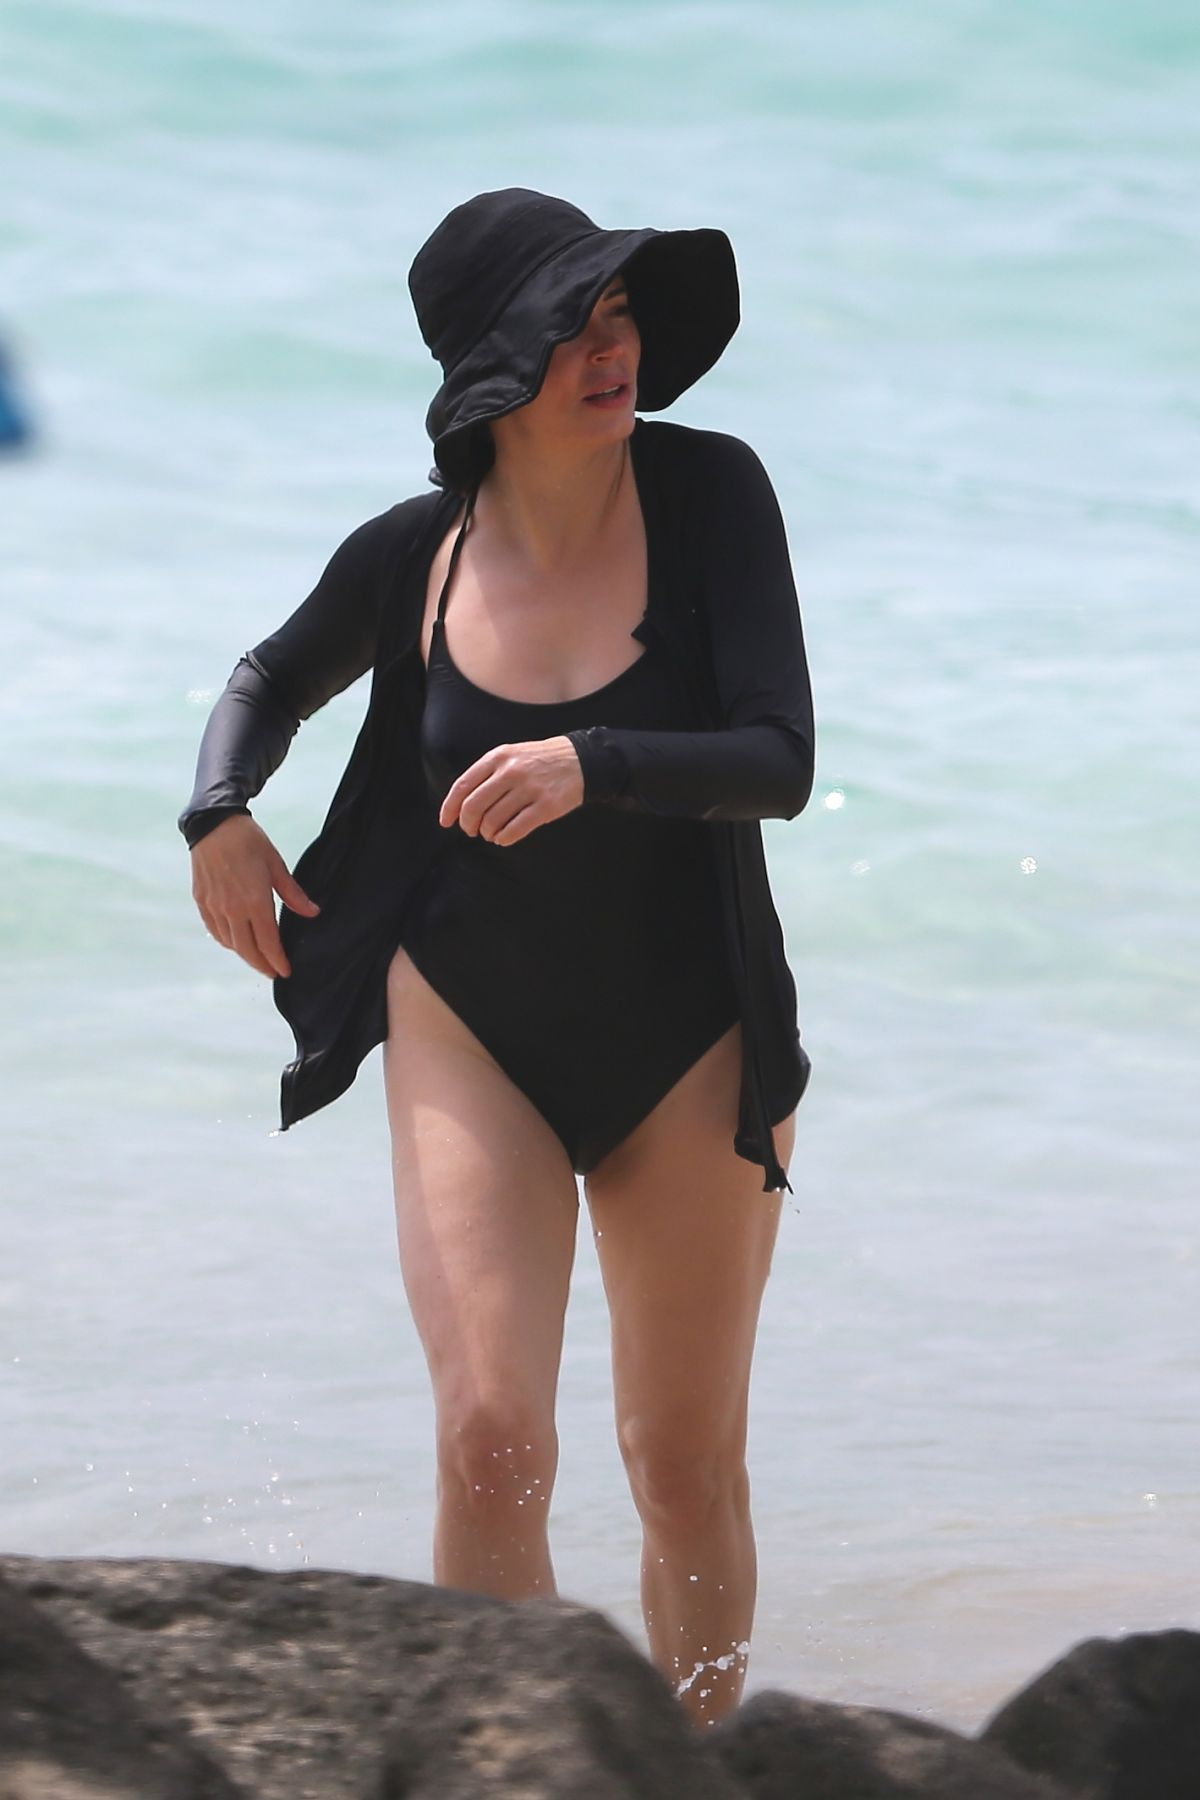 Rose McGowan Wearing a Swimsuit at a Beach in Hawaii